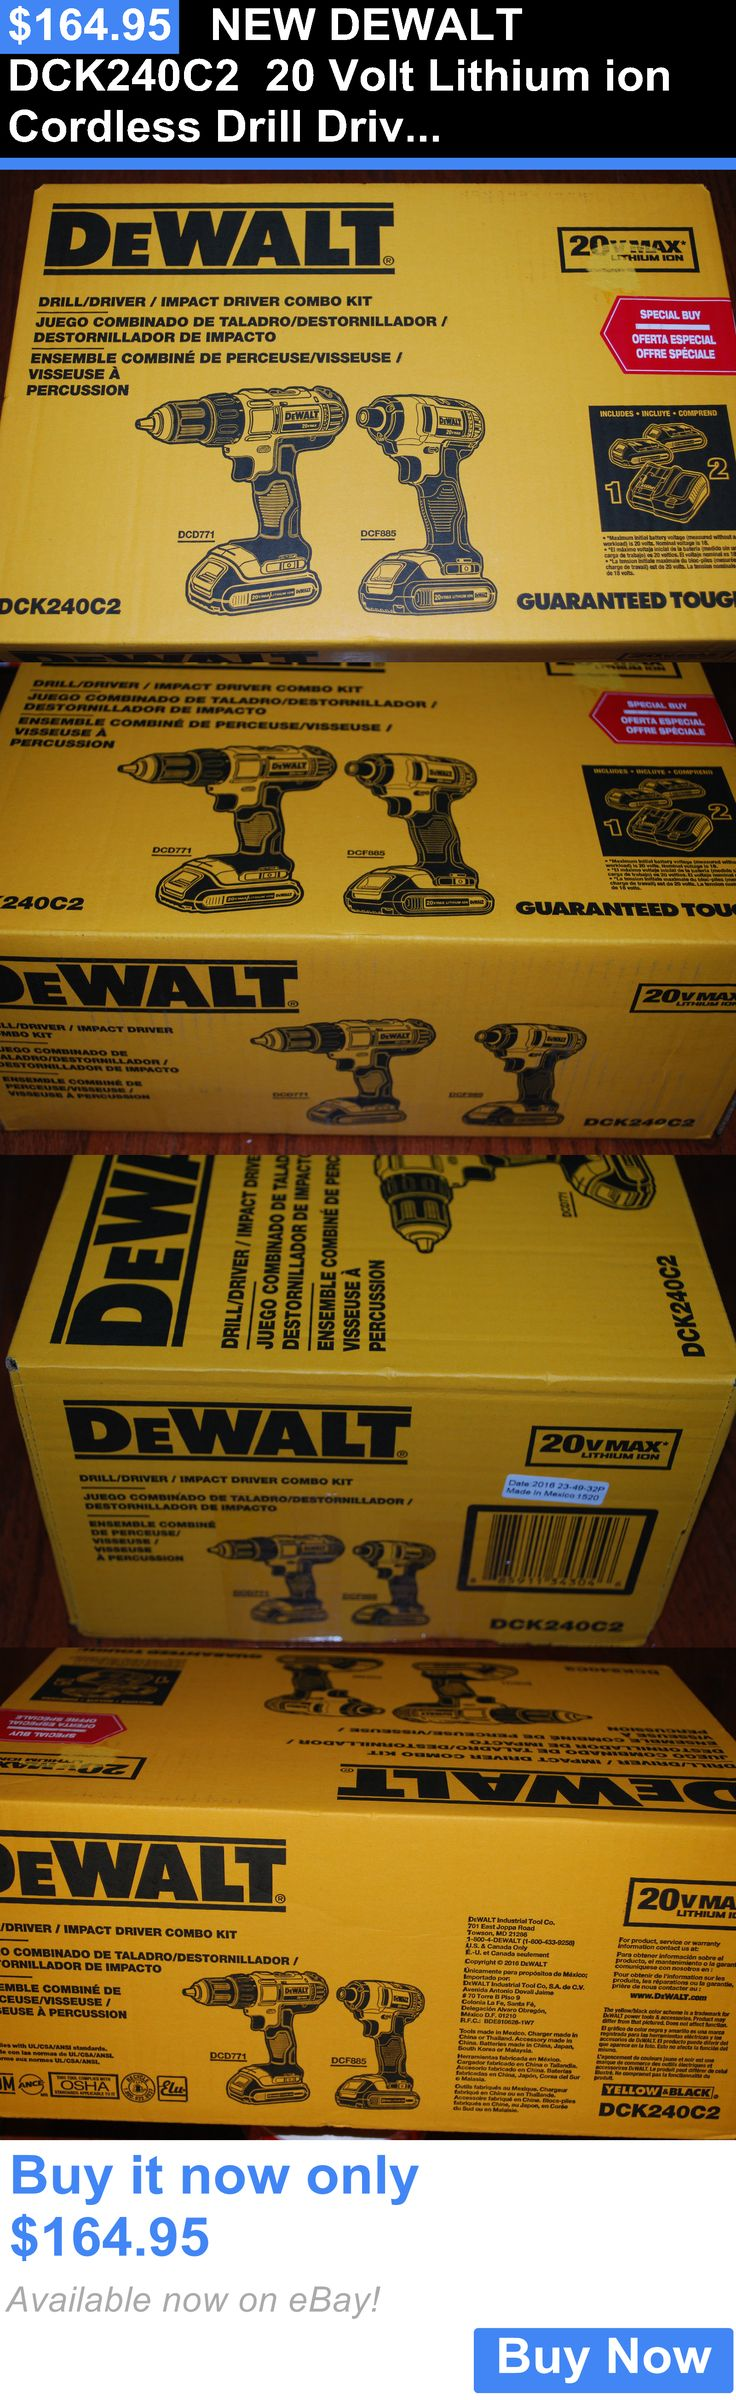 tools: New Dewalt Dck240c2 20 Volt Lithium Ion Cordless Drill Driver /Impact Combo Kit BUY IT NOW ONLY: $164.95